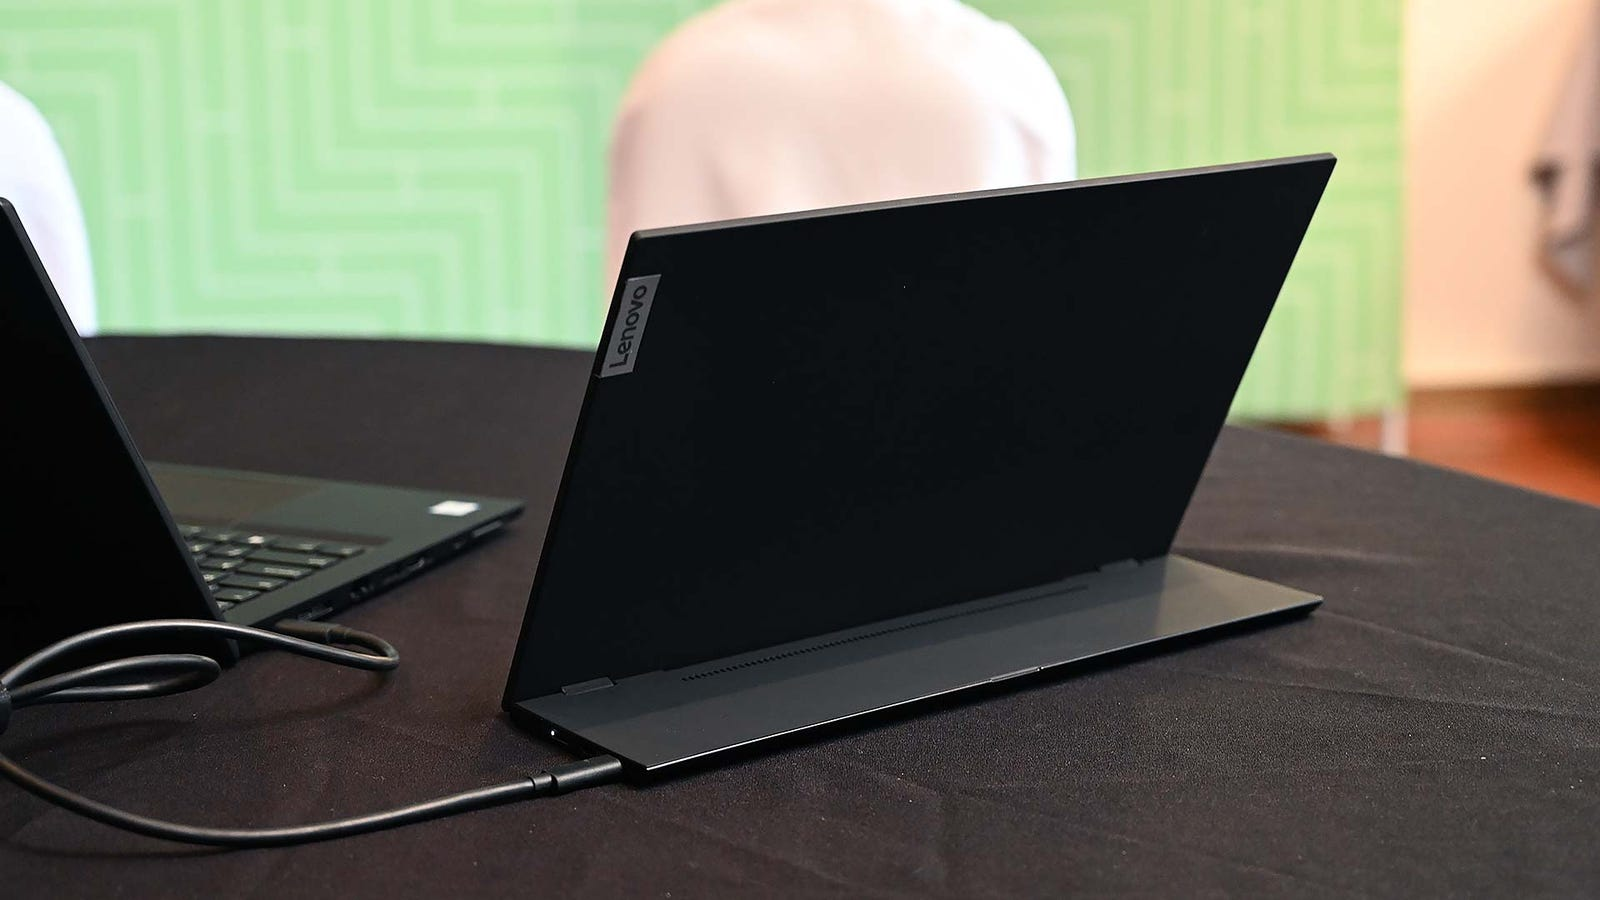 The ThinkVision M14 is a relatively straightforward accessory, which is all it needs to be.